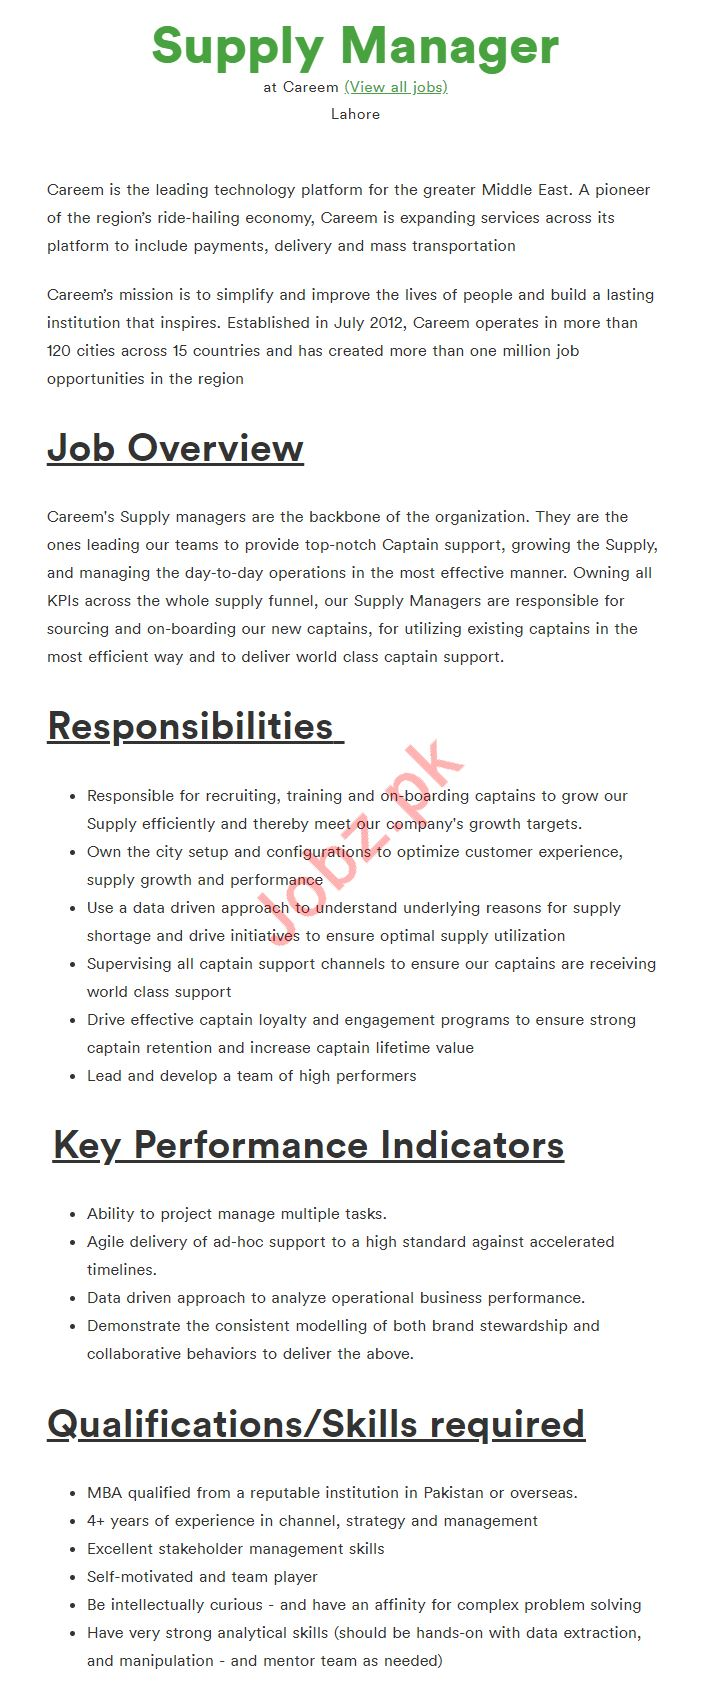 Supply Manager Job For Careem Company in Lahore